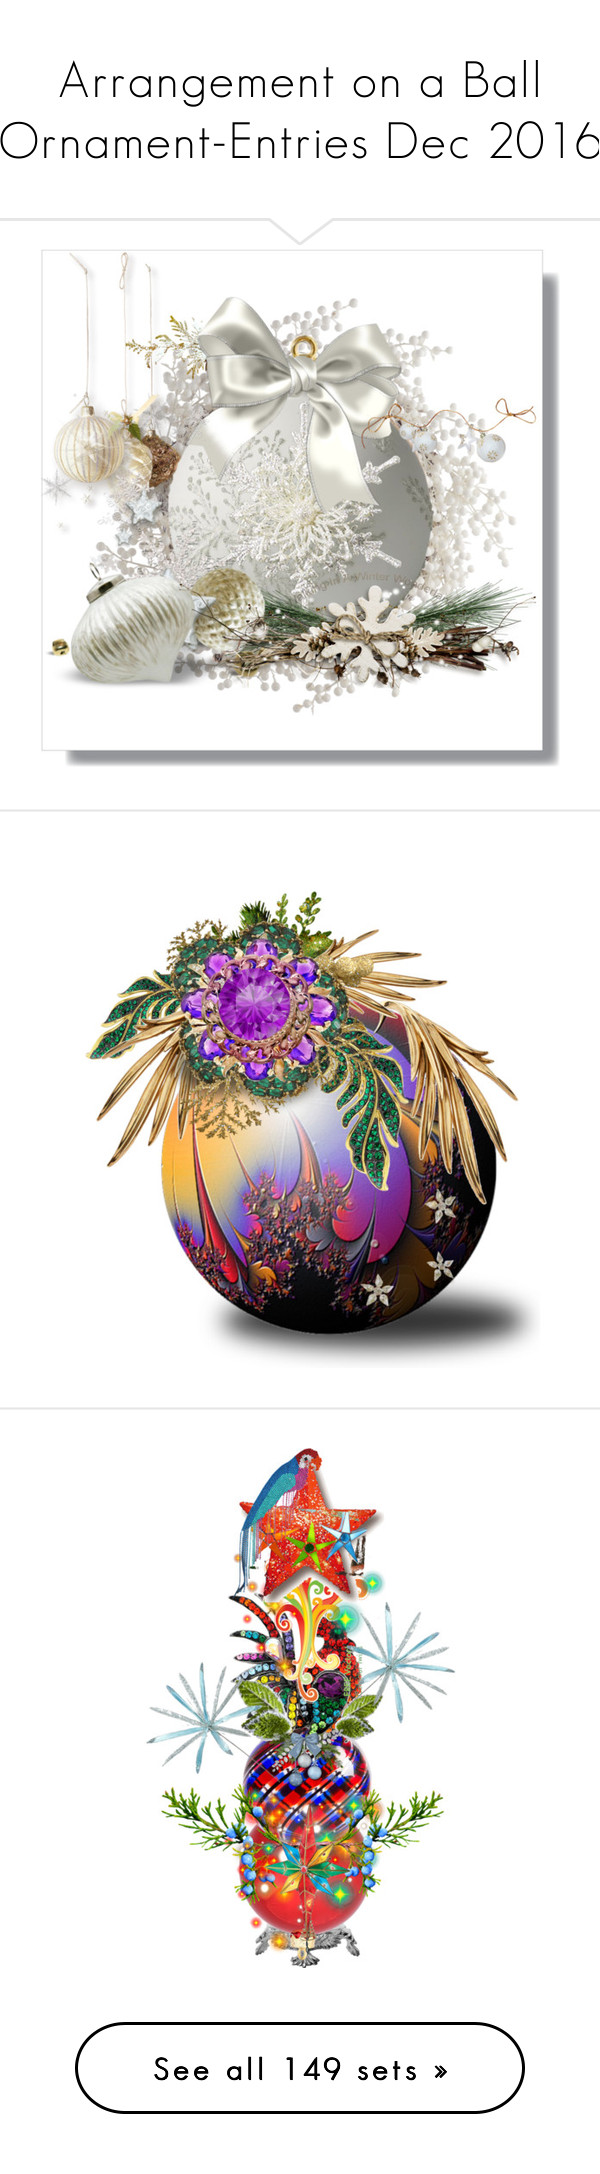 """""""Arrangement on a Ball Ornament-Entries Dec 2016"""" by judymjohnson ❤ liked on Polyvore featuring art, theunexpected, Christmas, ornament, ChristmasSet, santaornament, interior, interiors, interior design and home"""